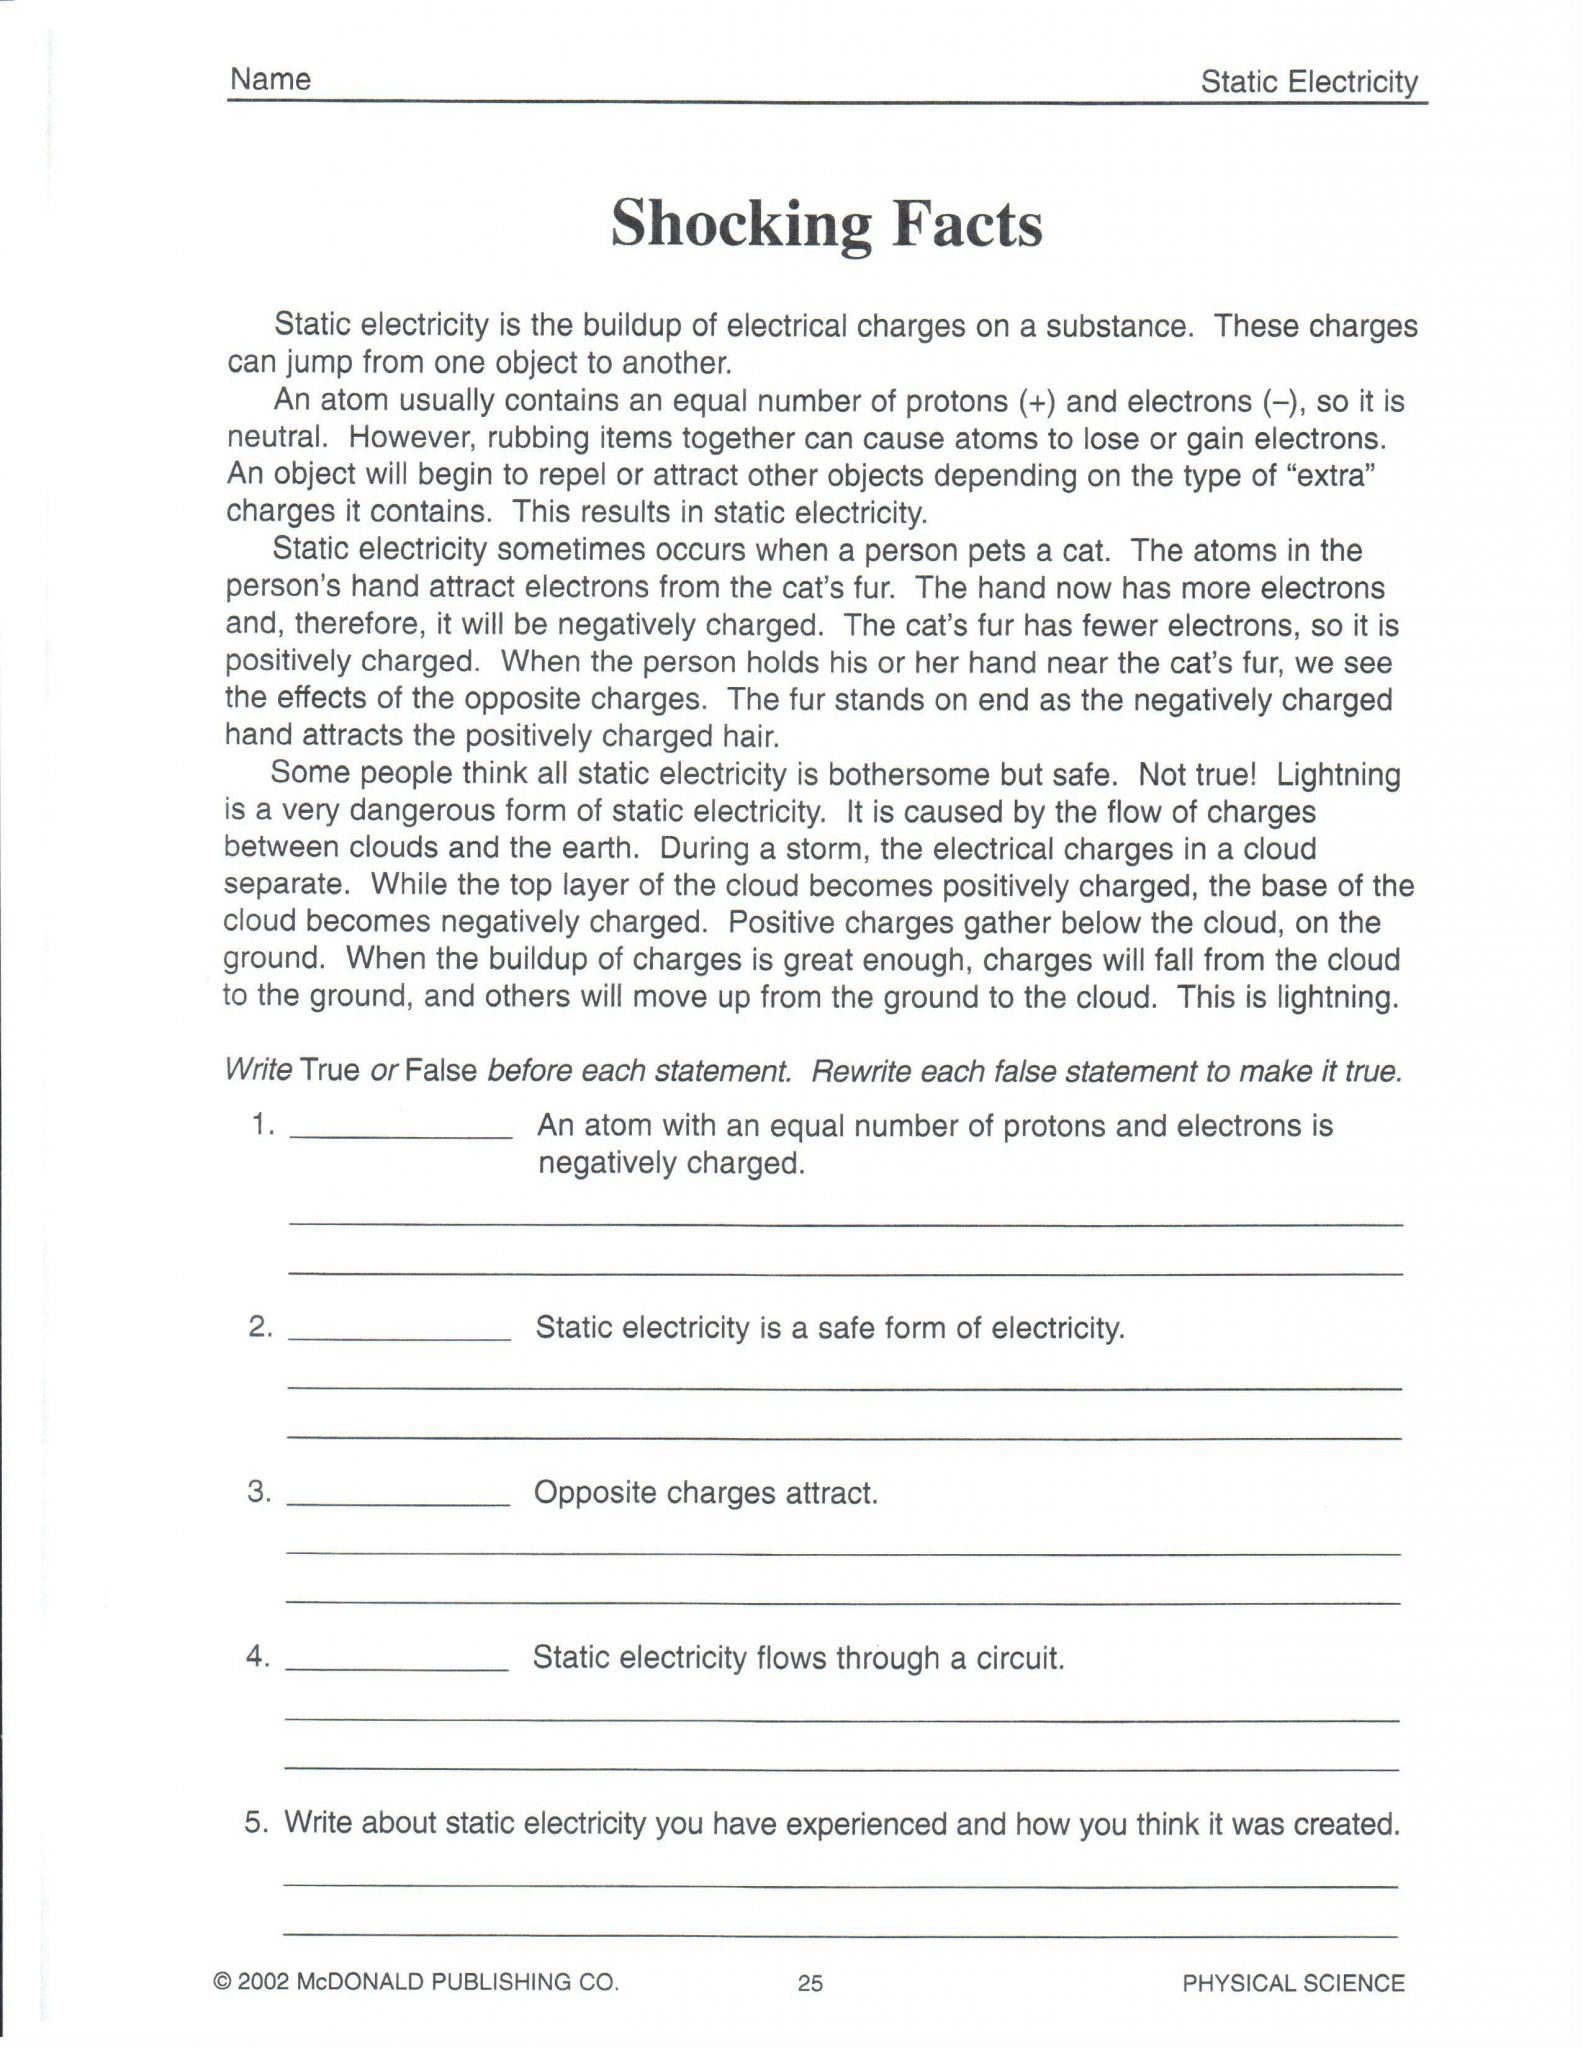 Speed and Velocity Worksheet Answer Key or Kids Science Packets for 5th Grade Physical Science Worksheets